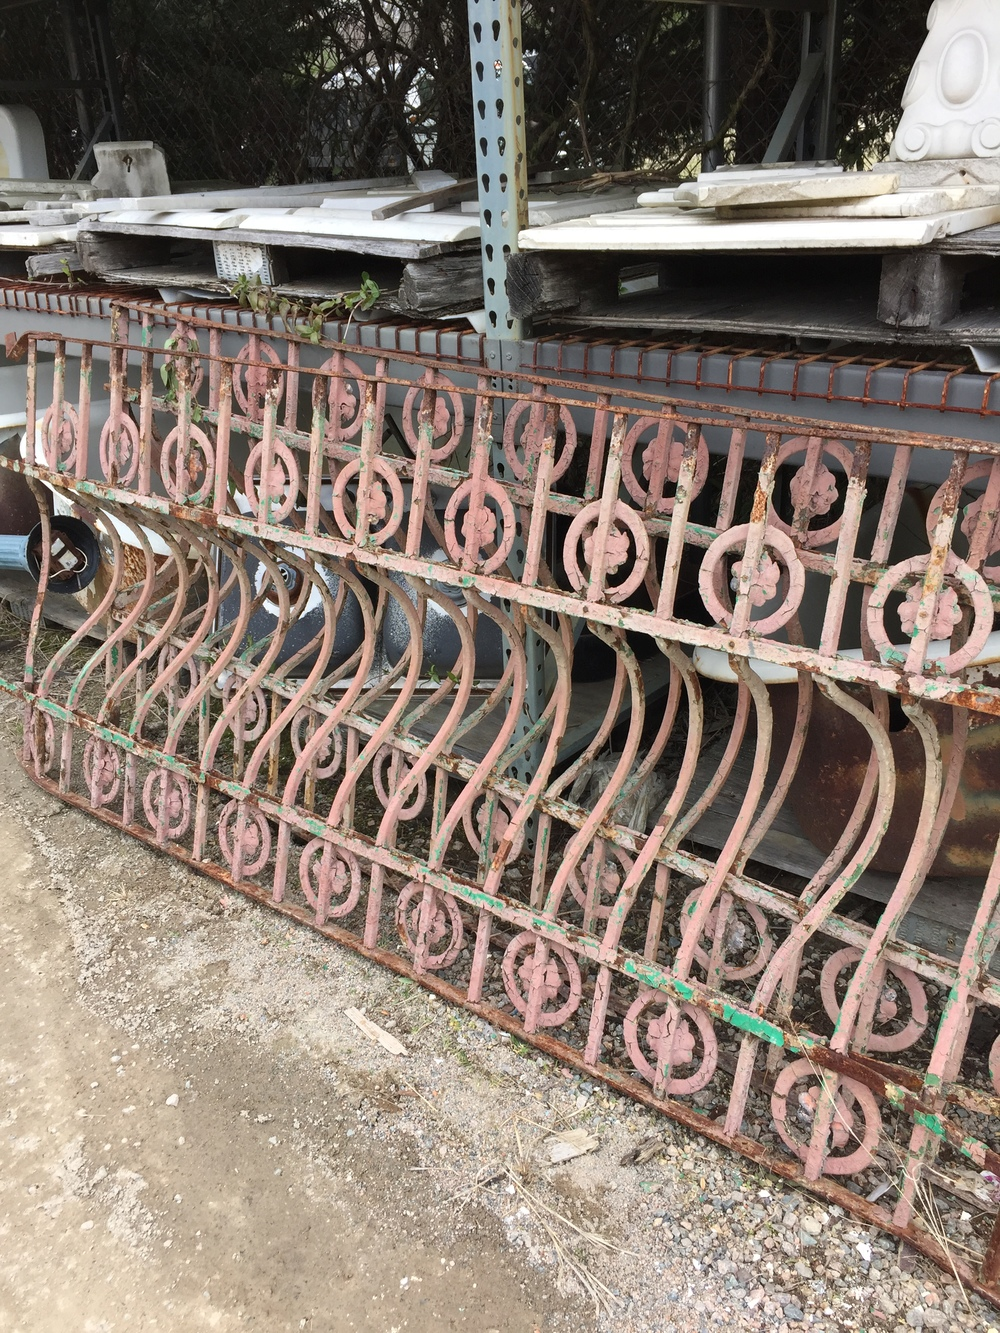 Decorative Iron Fence.JPG